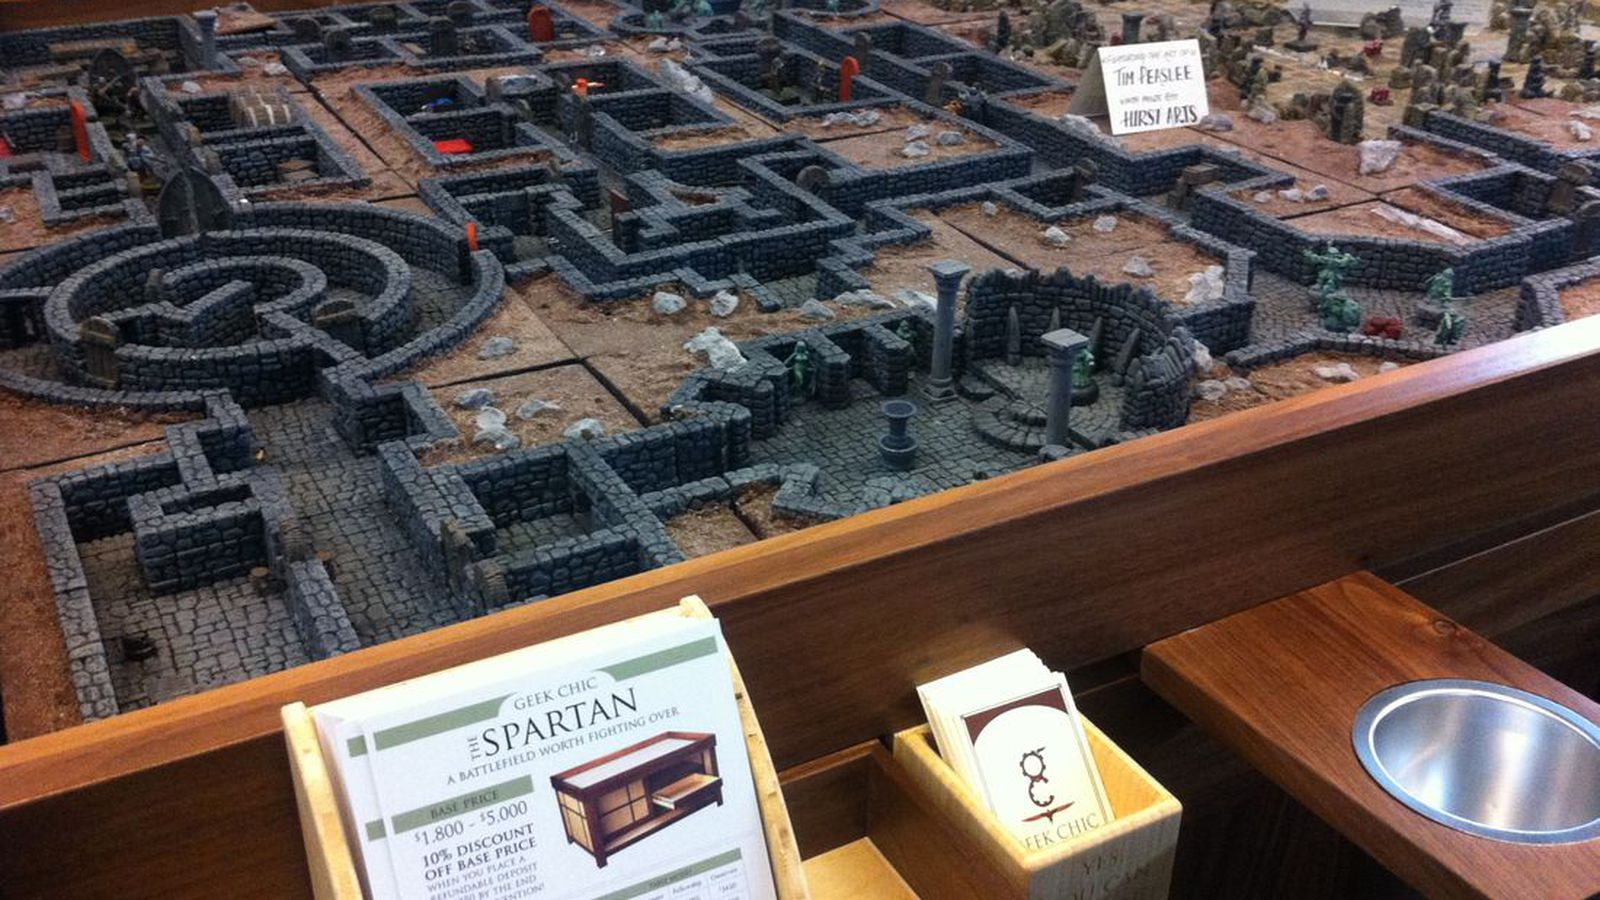 Geek Chic Gaming Tables Add 60 Inch Touchscreens To The